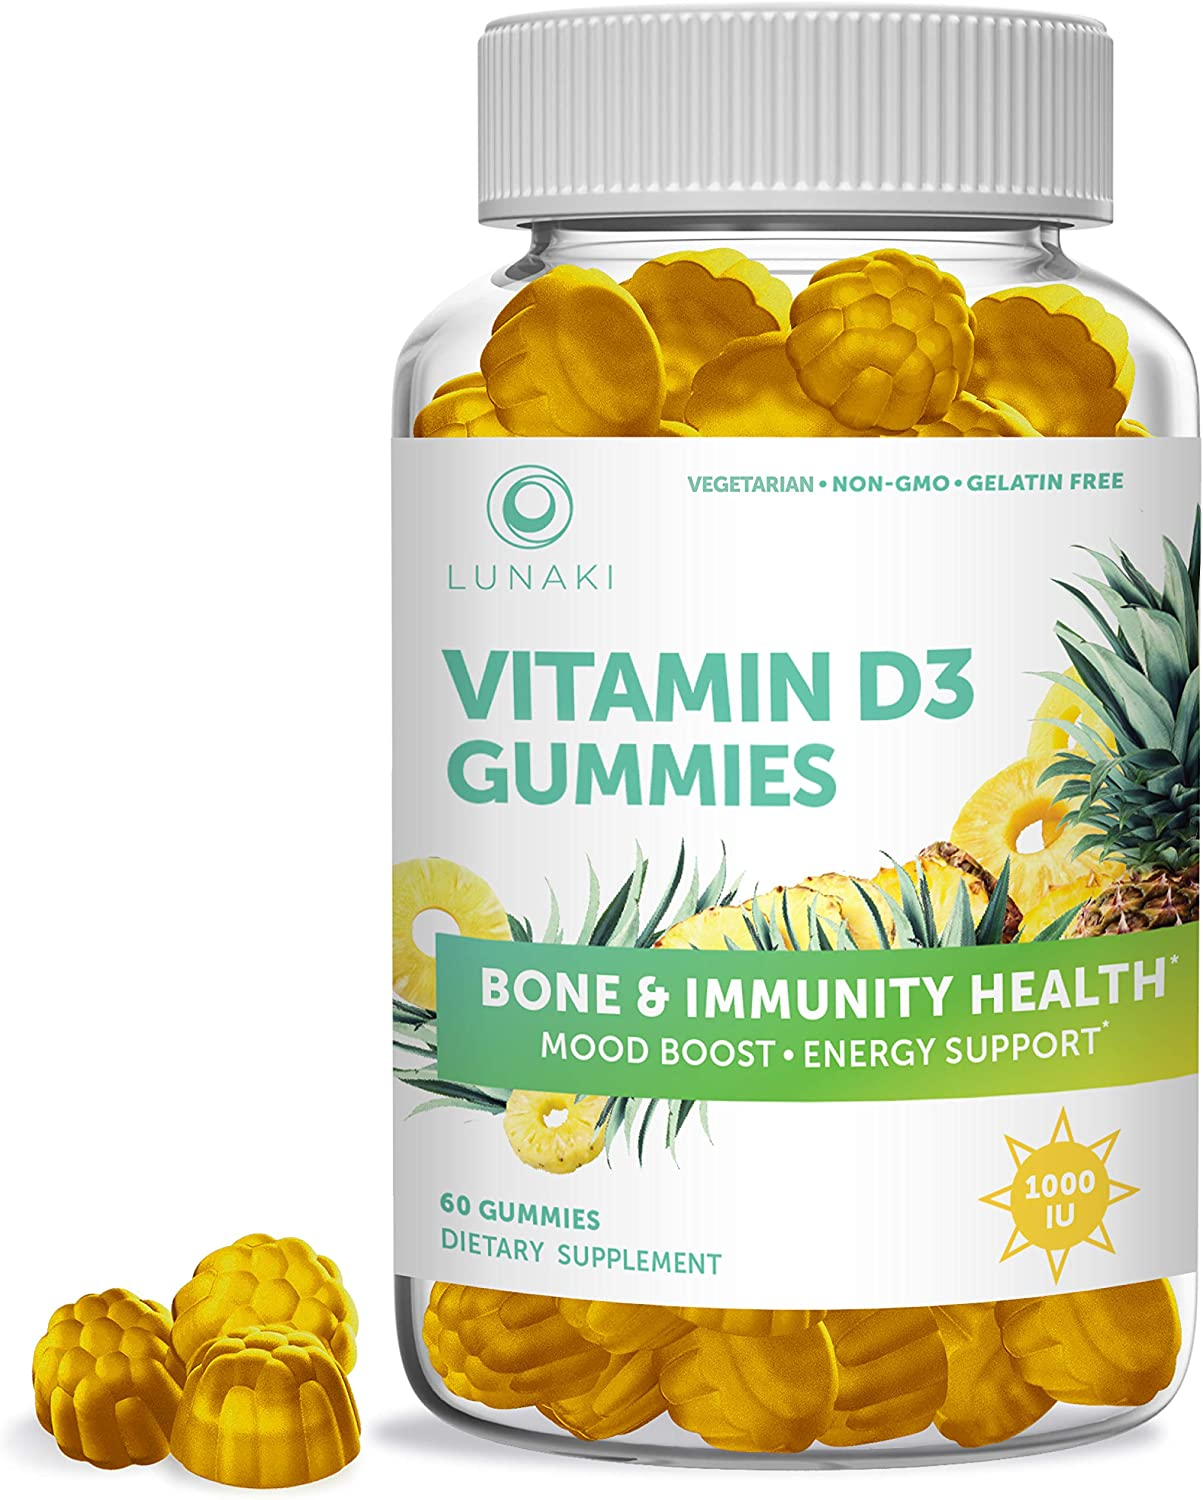 Lunaki Vitamin D D3 Gummies - Chewable, Organic, Non-GMO, No Corn Syrup, Vegaterian, All Natural, Immunity, Bone and Mood Support for Adults - Gummy 60 Day Supply